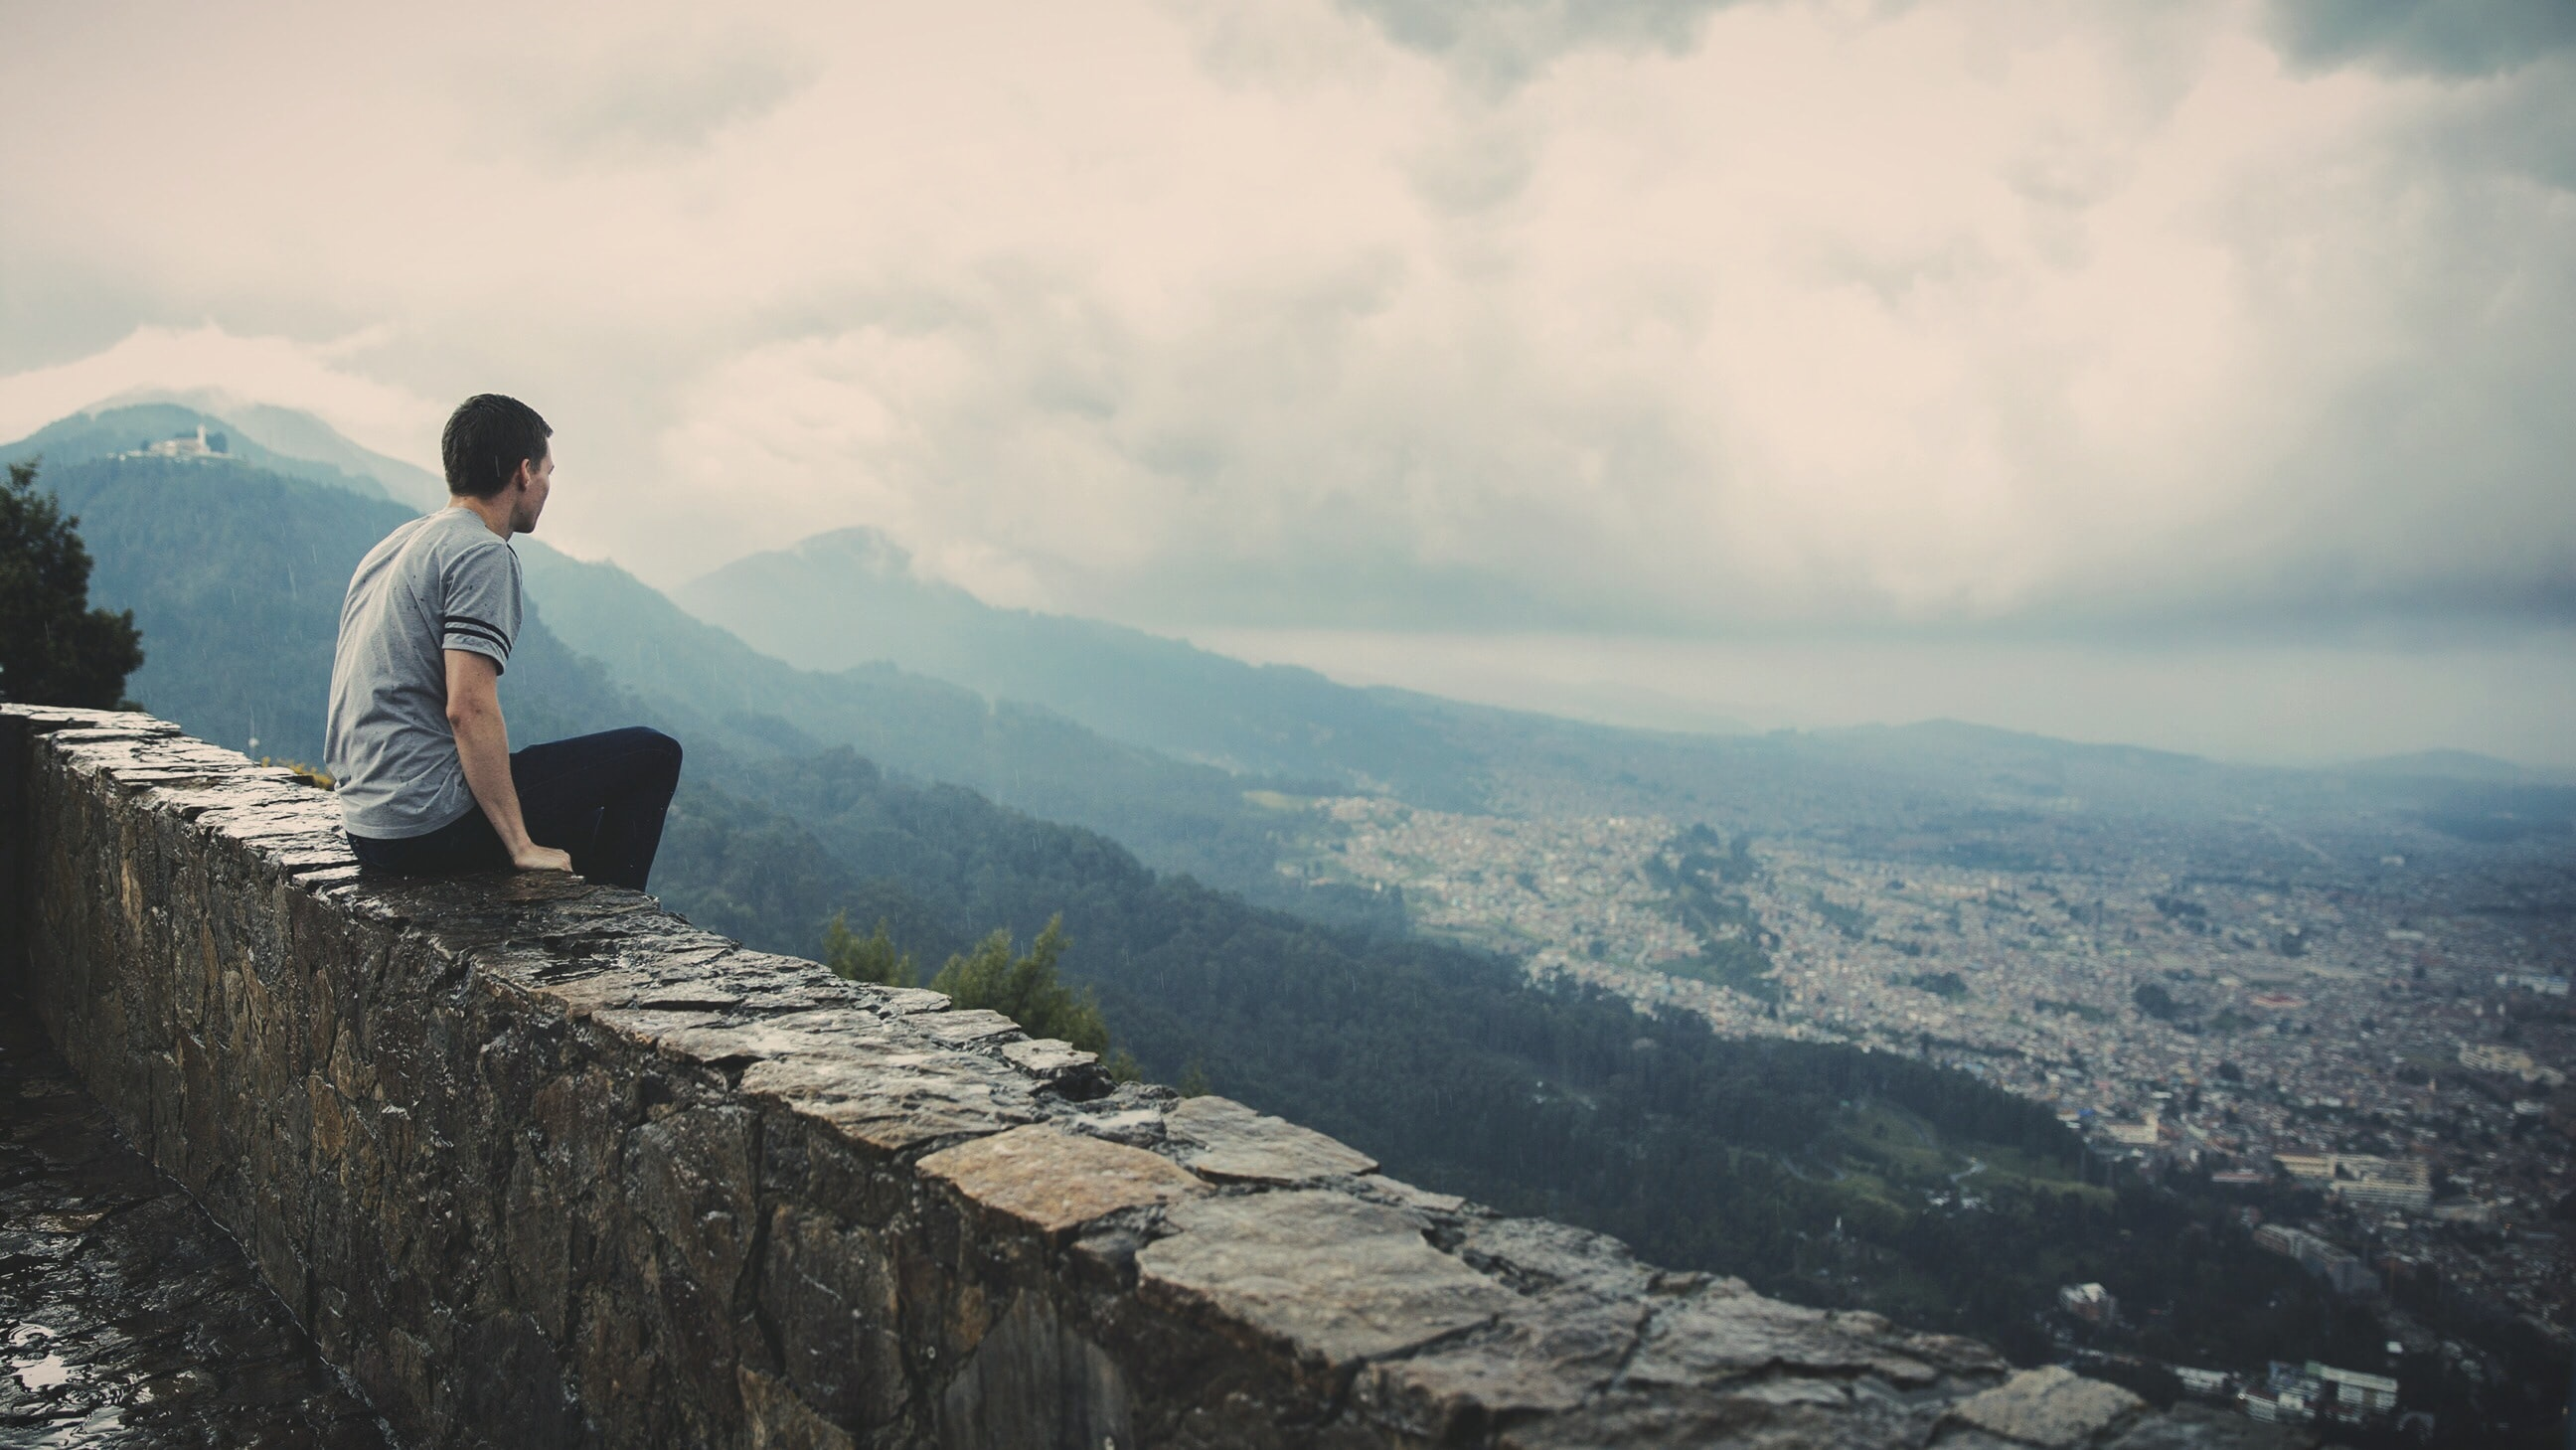 man sitting alone on concrete brick wall facing mountain and city under cloudy sky